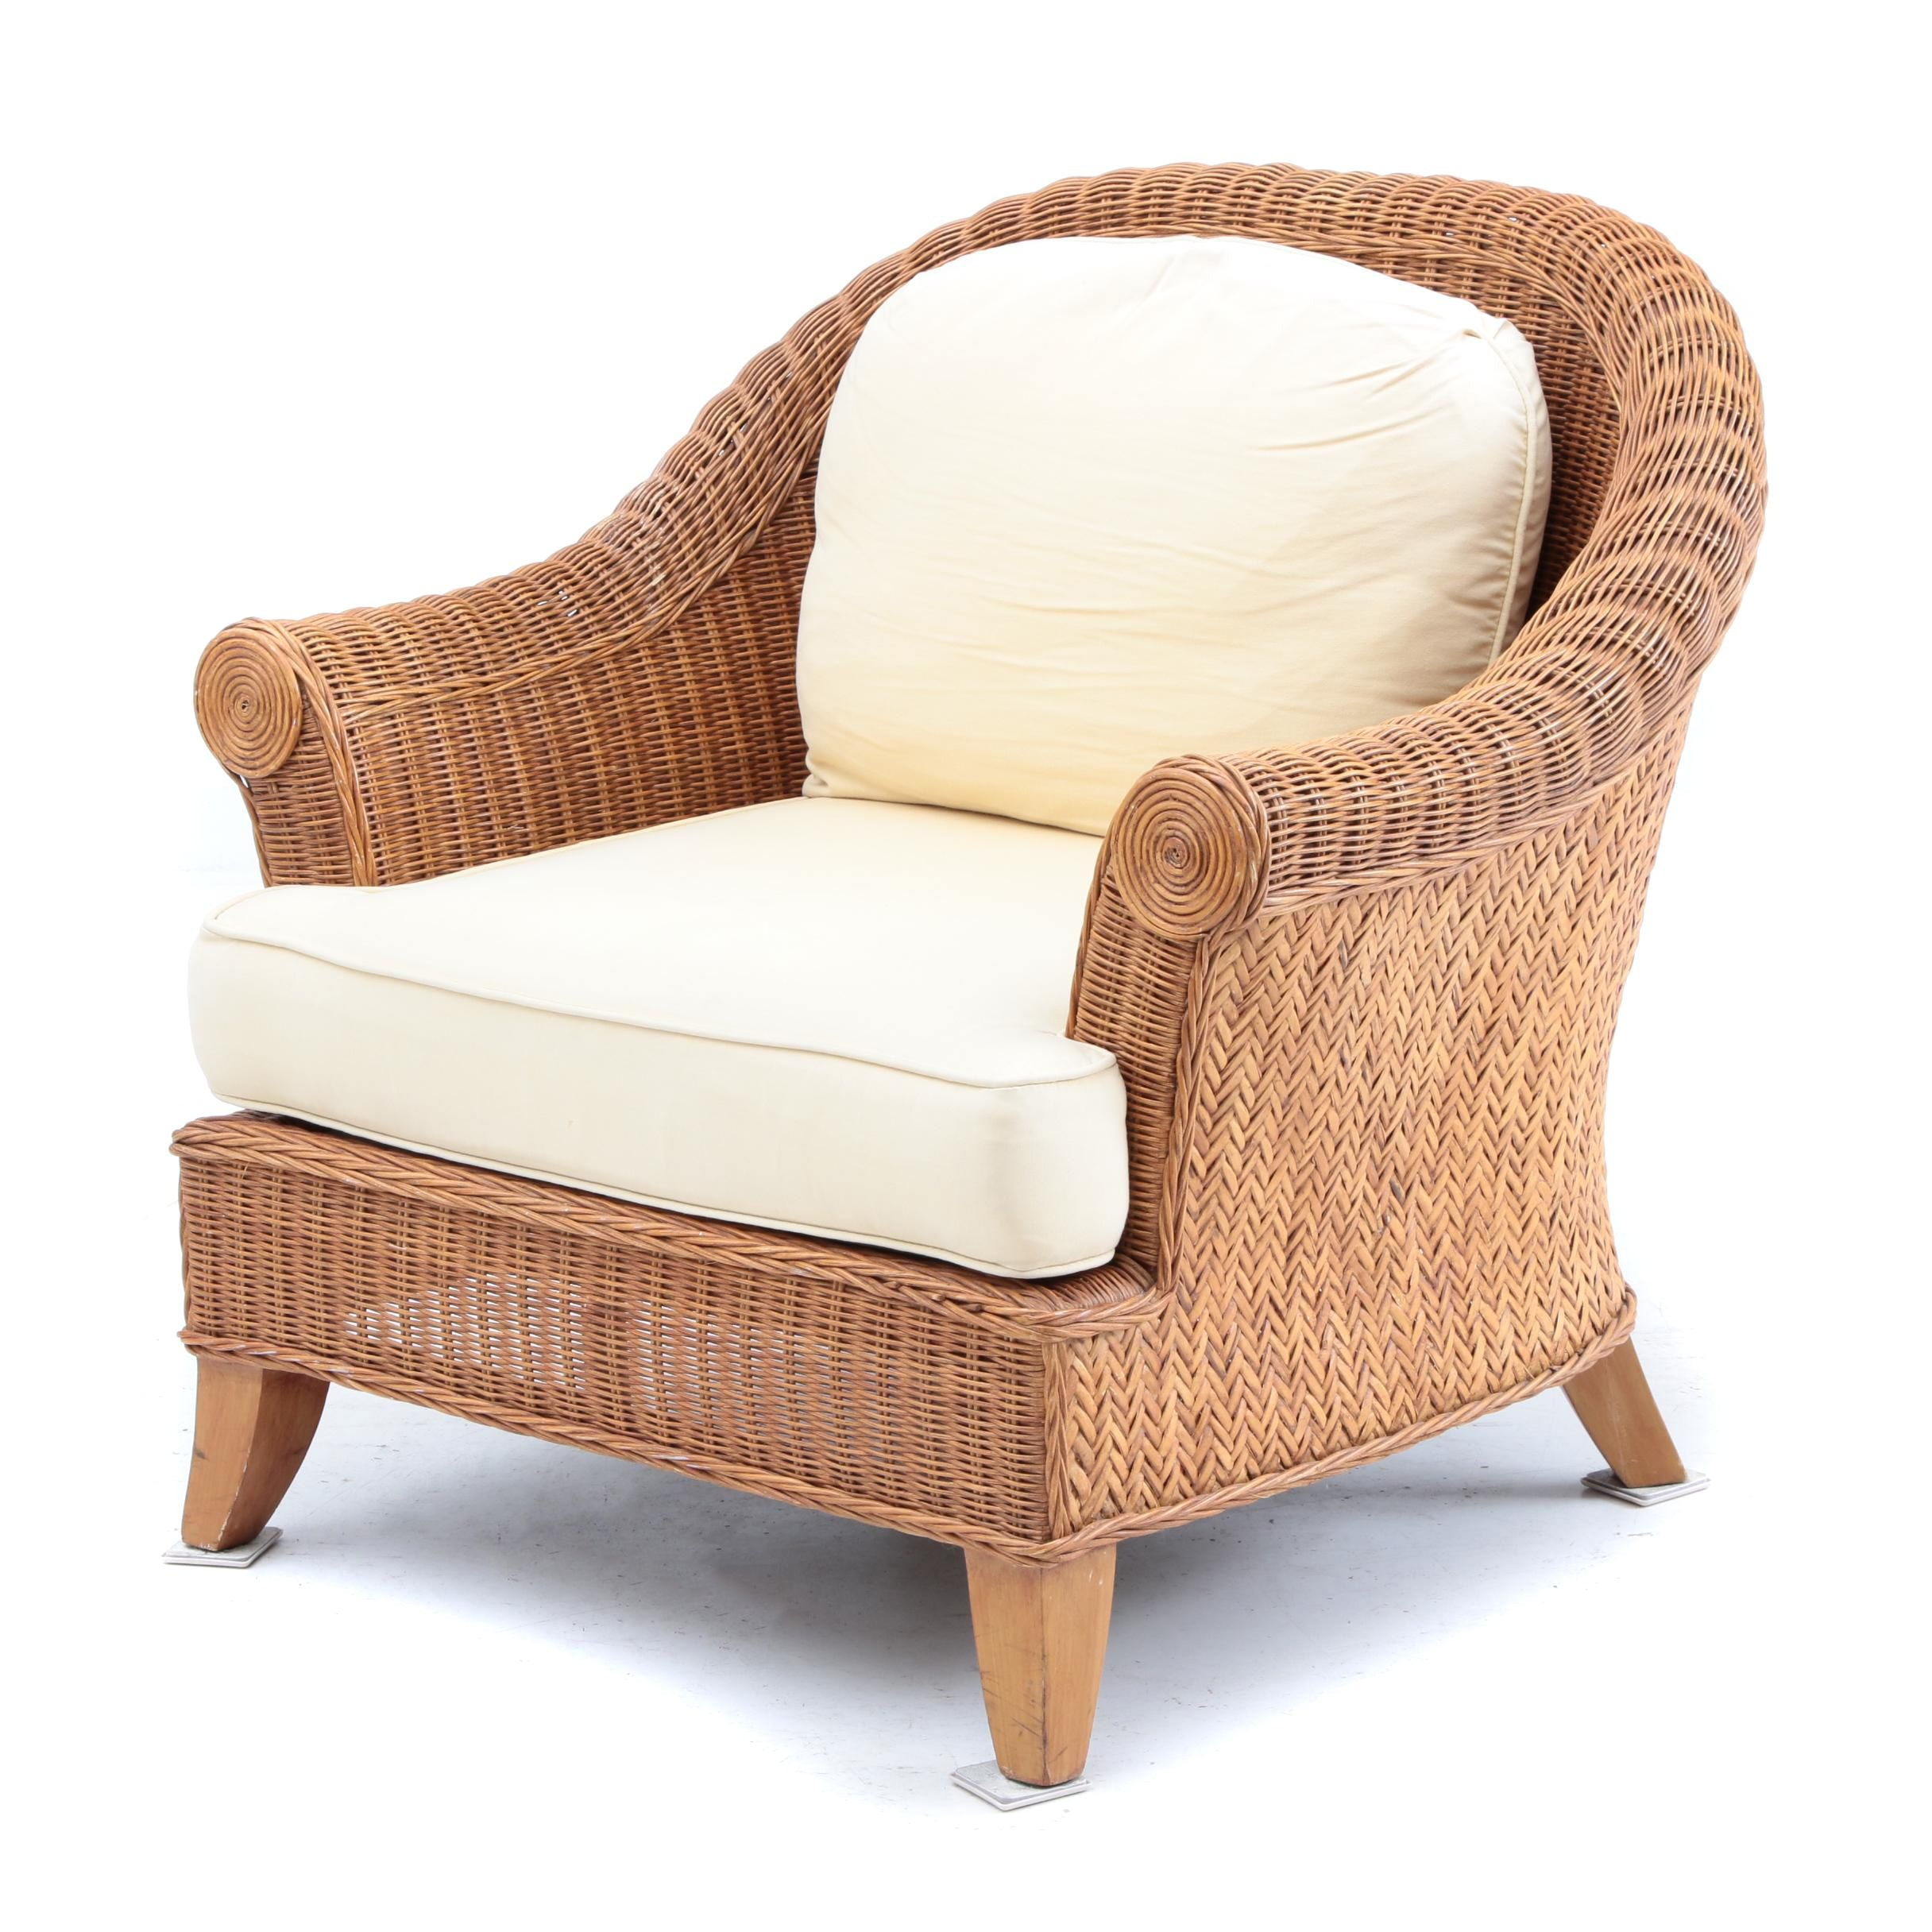 Wicker Club Chair by Ethan Allen